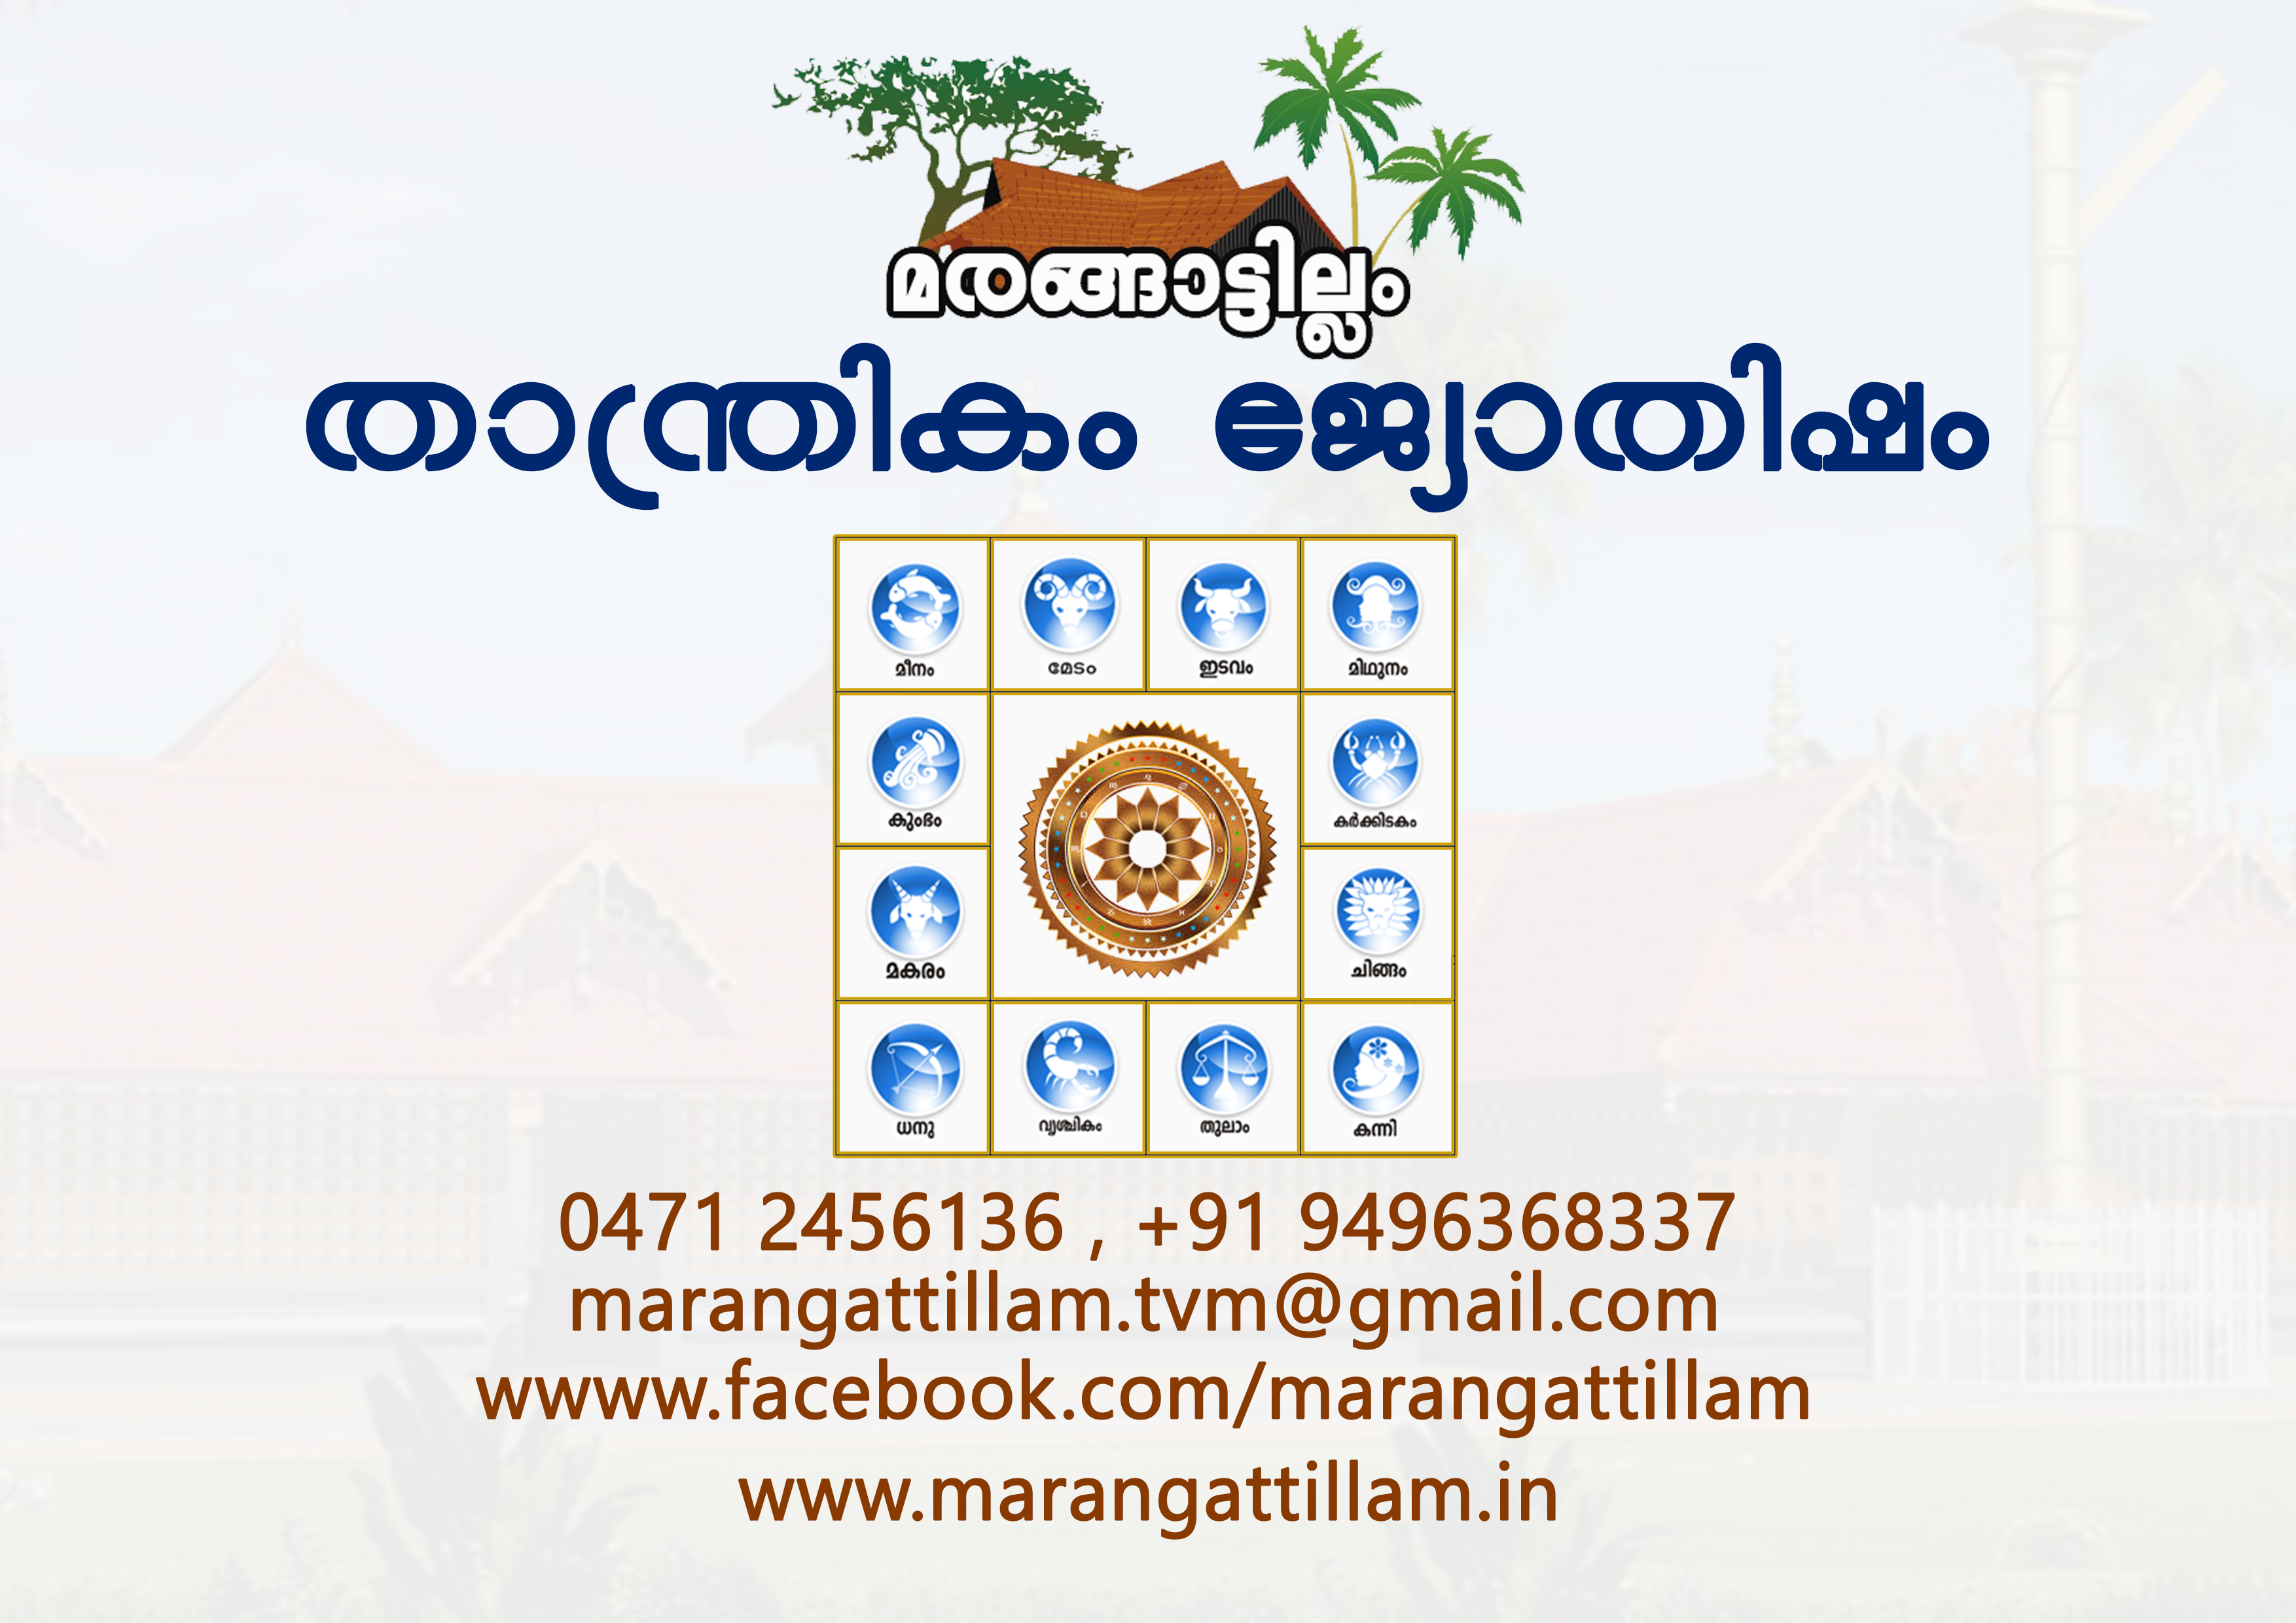 Marangattillam - Best Astrological Consultations in Thiruvananthapuram Corporation Trivandrum Kerala India